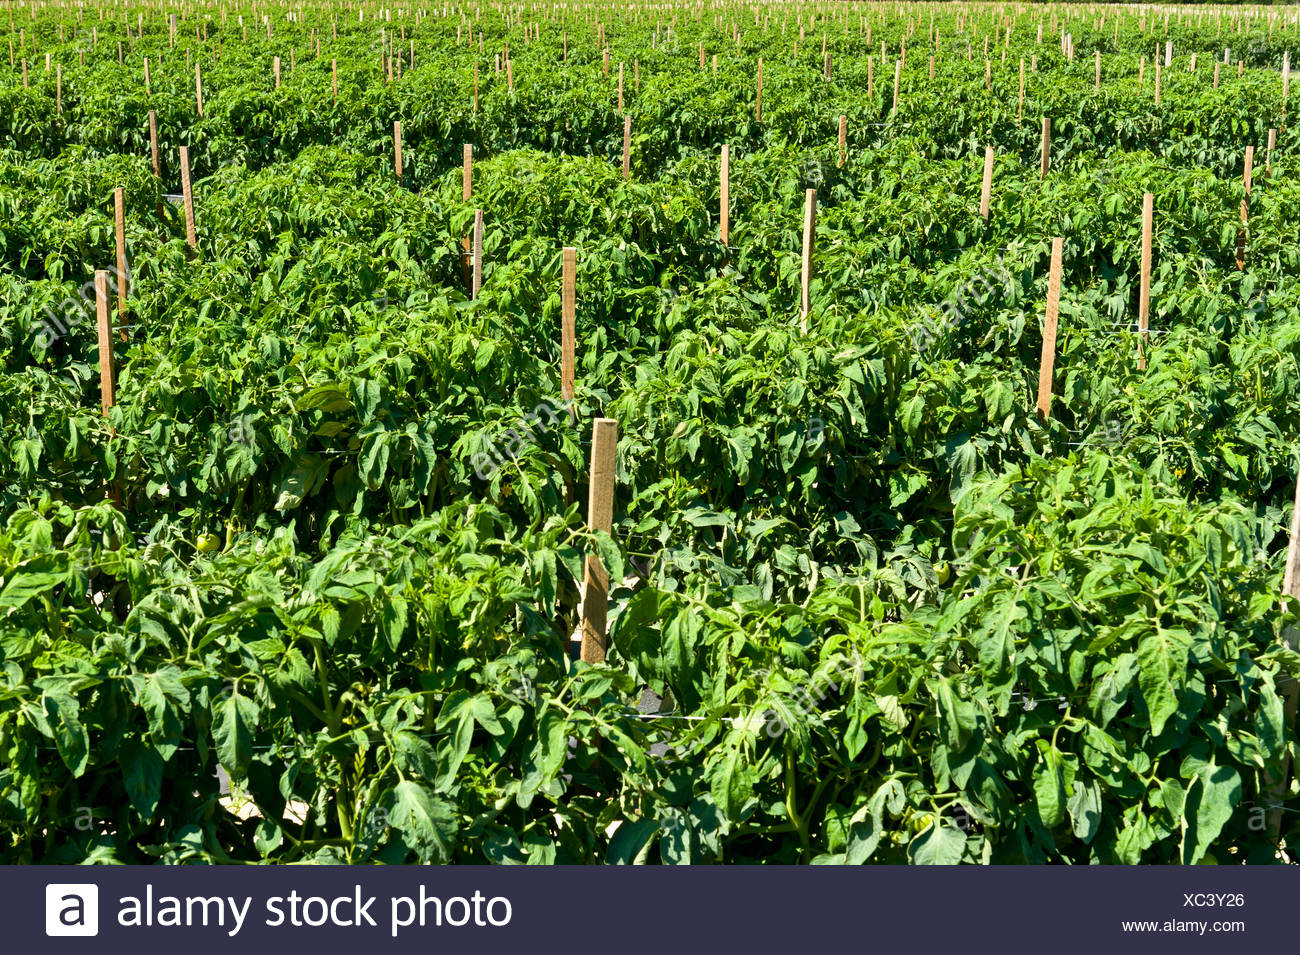 Agriculture - Large field of mulched, irrigated and staked fresh market tomato plants / near Hamburg, Arkansas, USA. - Stock Image